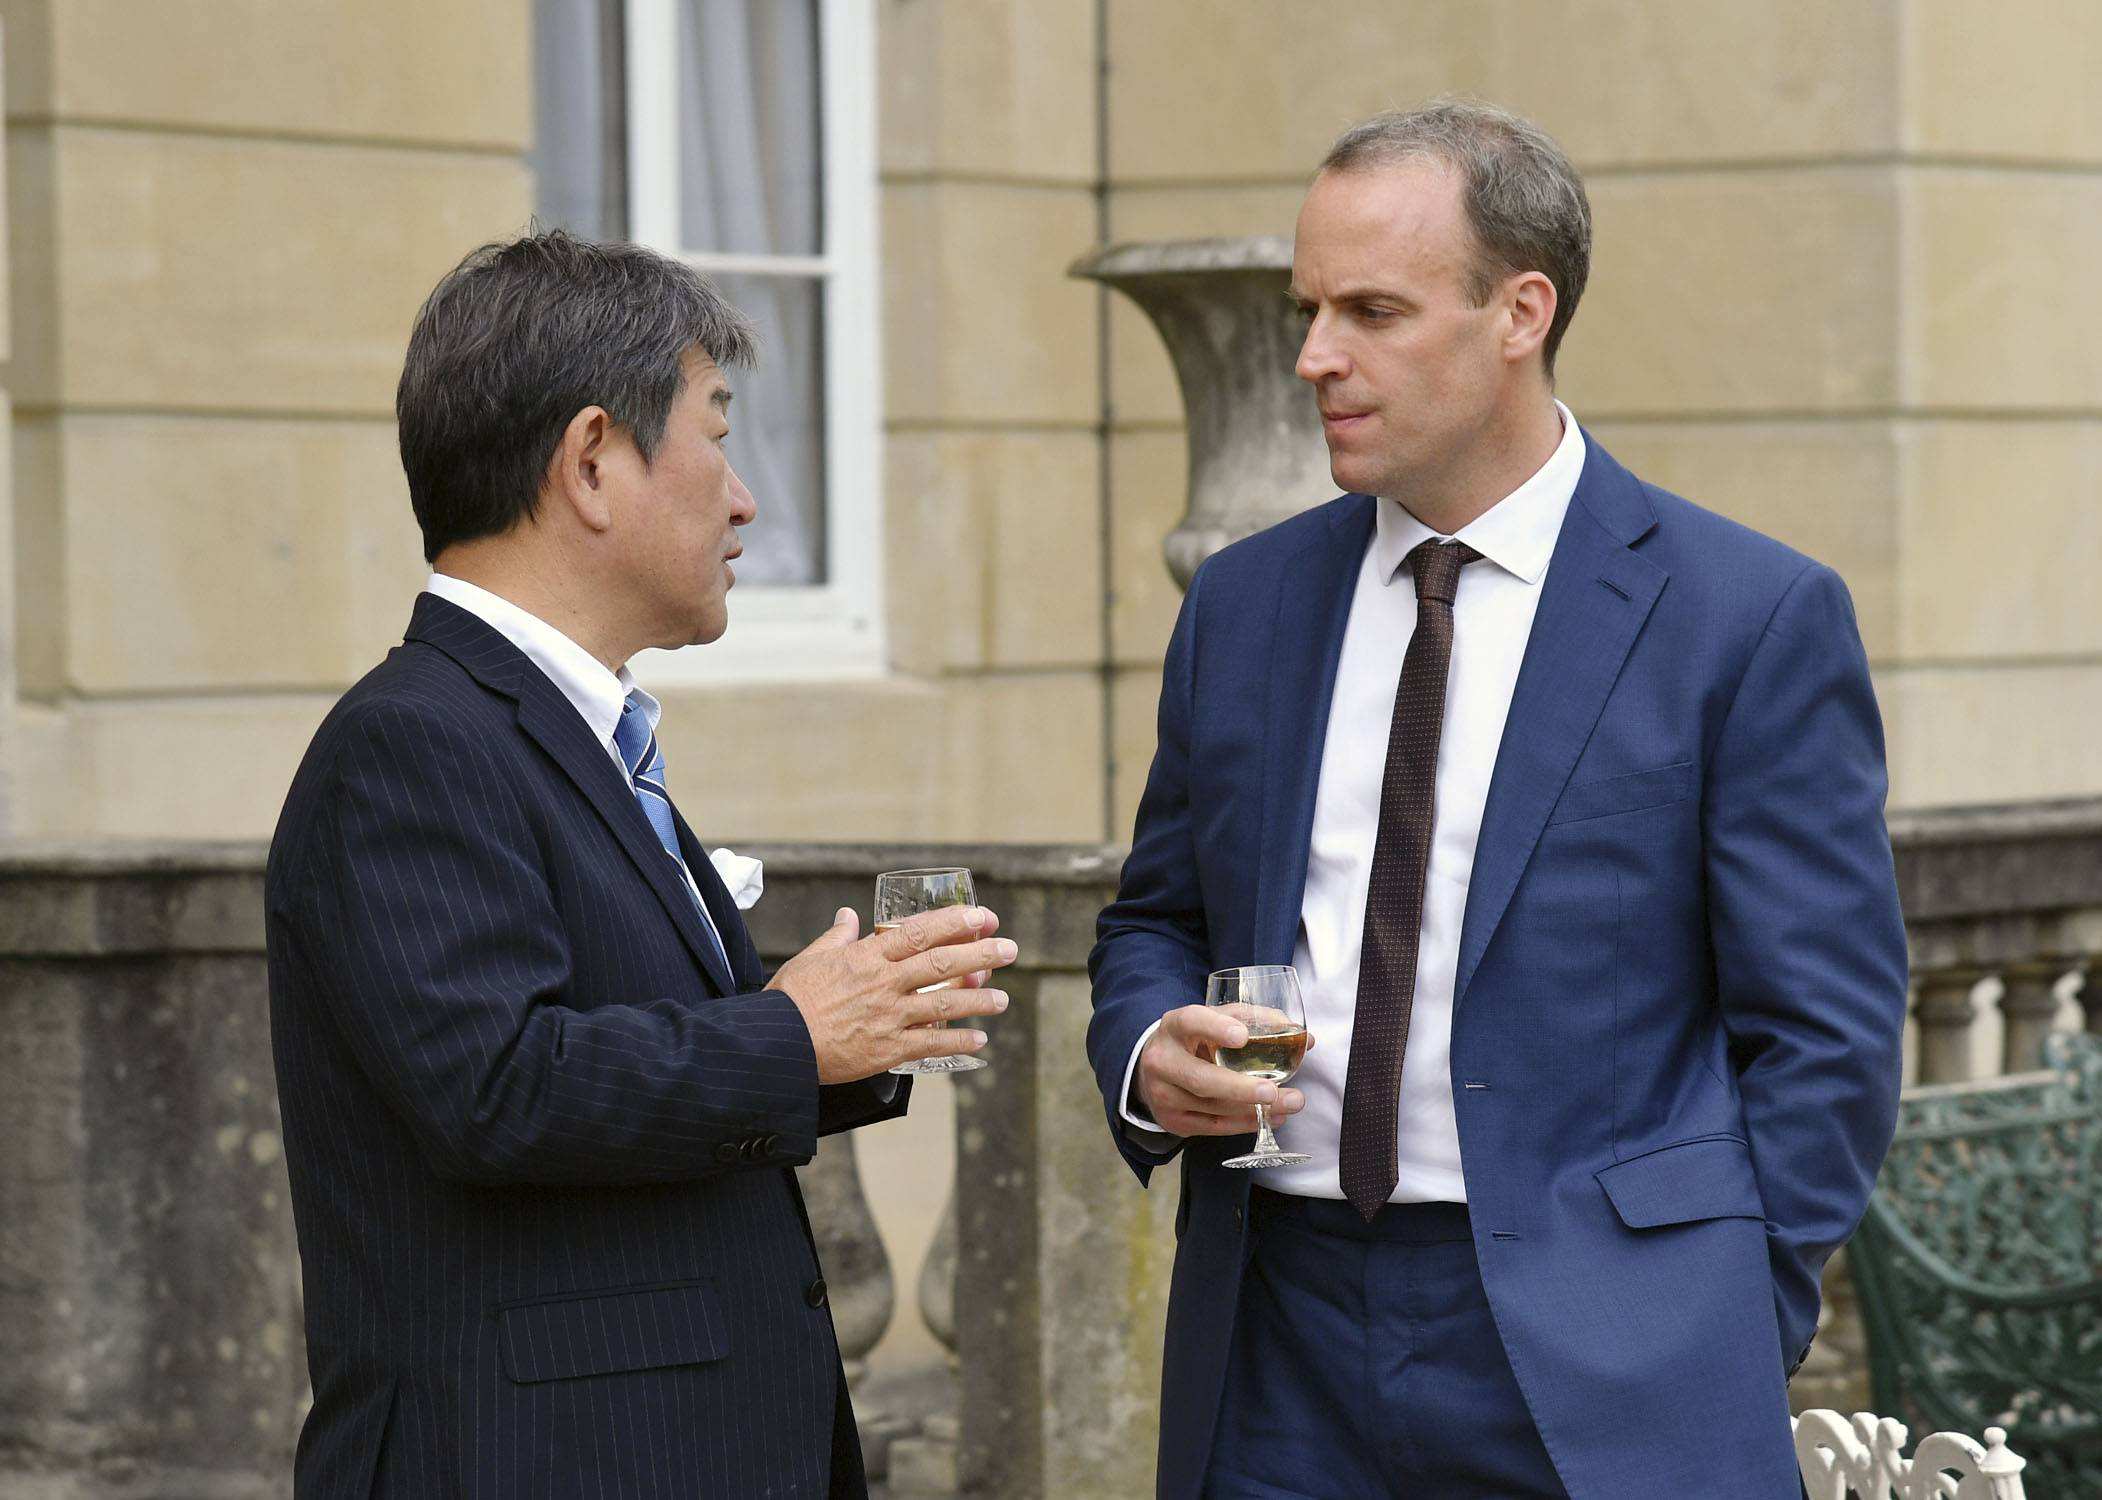 Foreign Minister Toshimitsu Motegi and British Foreign Secretary Dominic Raab meet in London on Wednesday. | FOREIGN MINISTRY / VIA KYODO